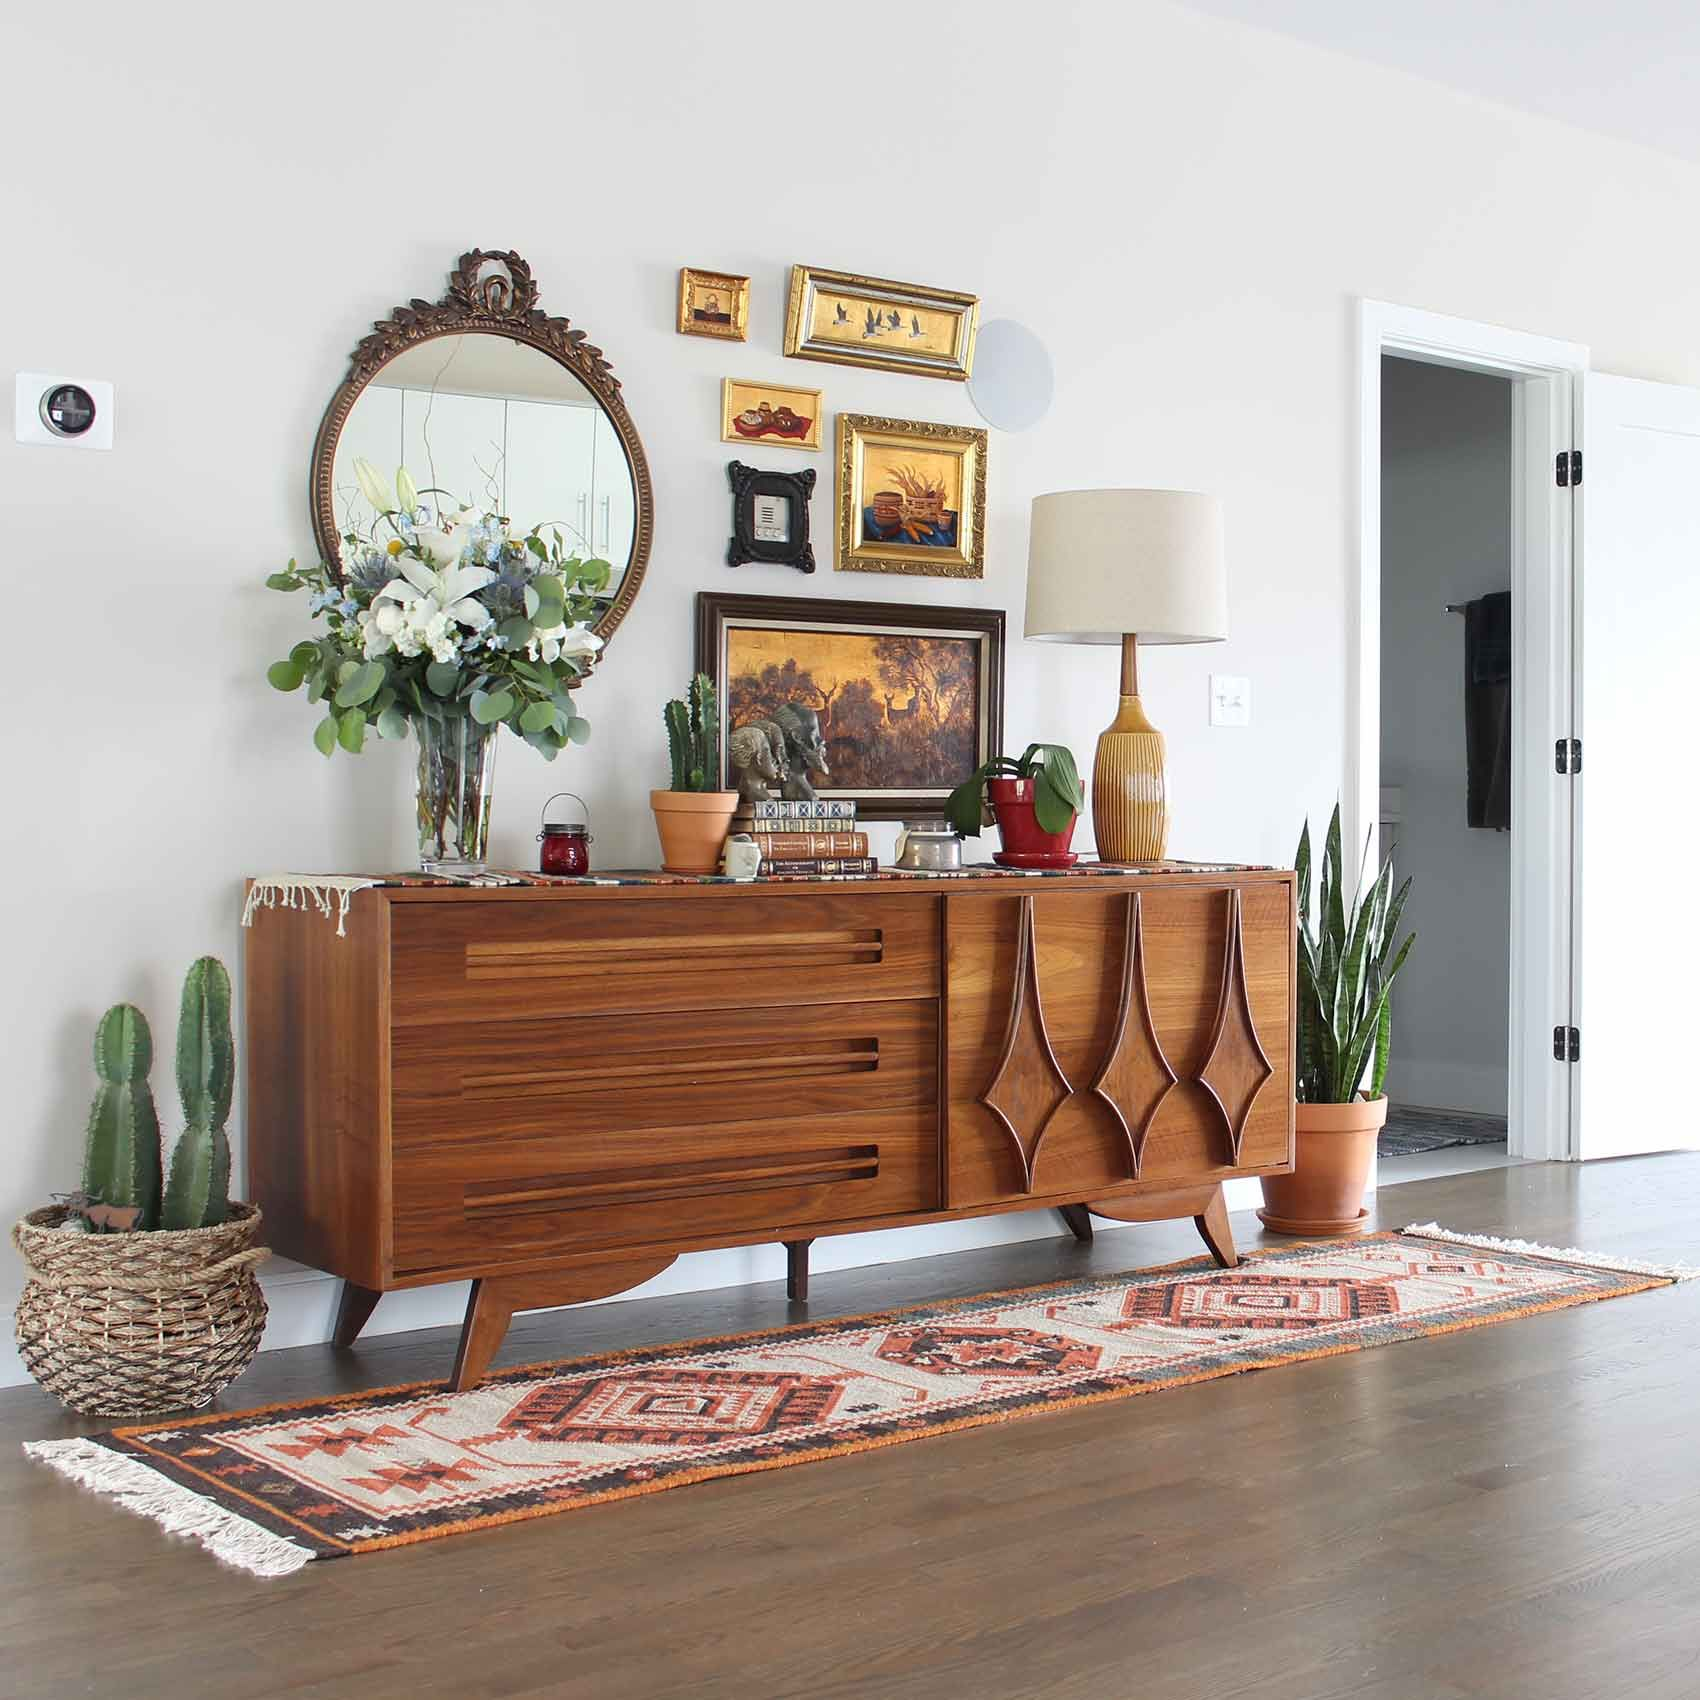 Home Decorating Ideasfor Small House: Newlywed Couple's Lucky Find In